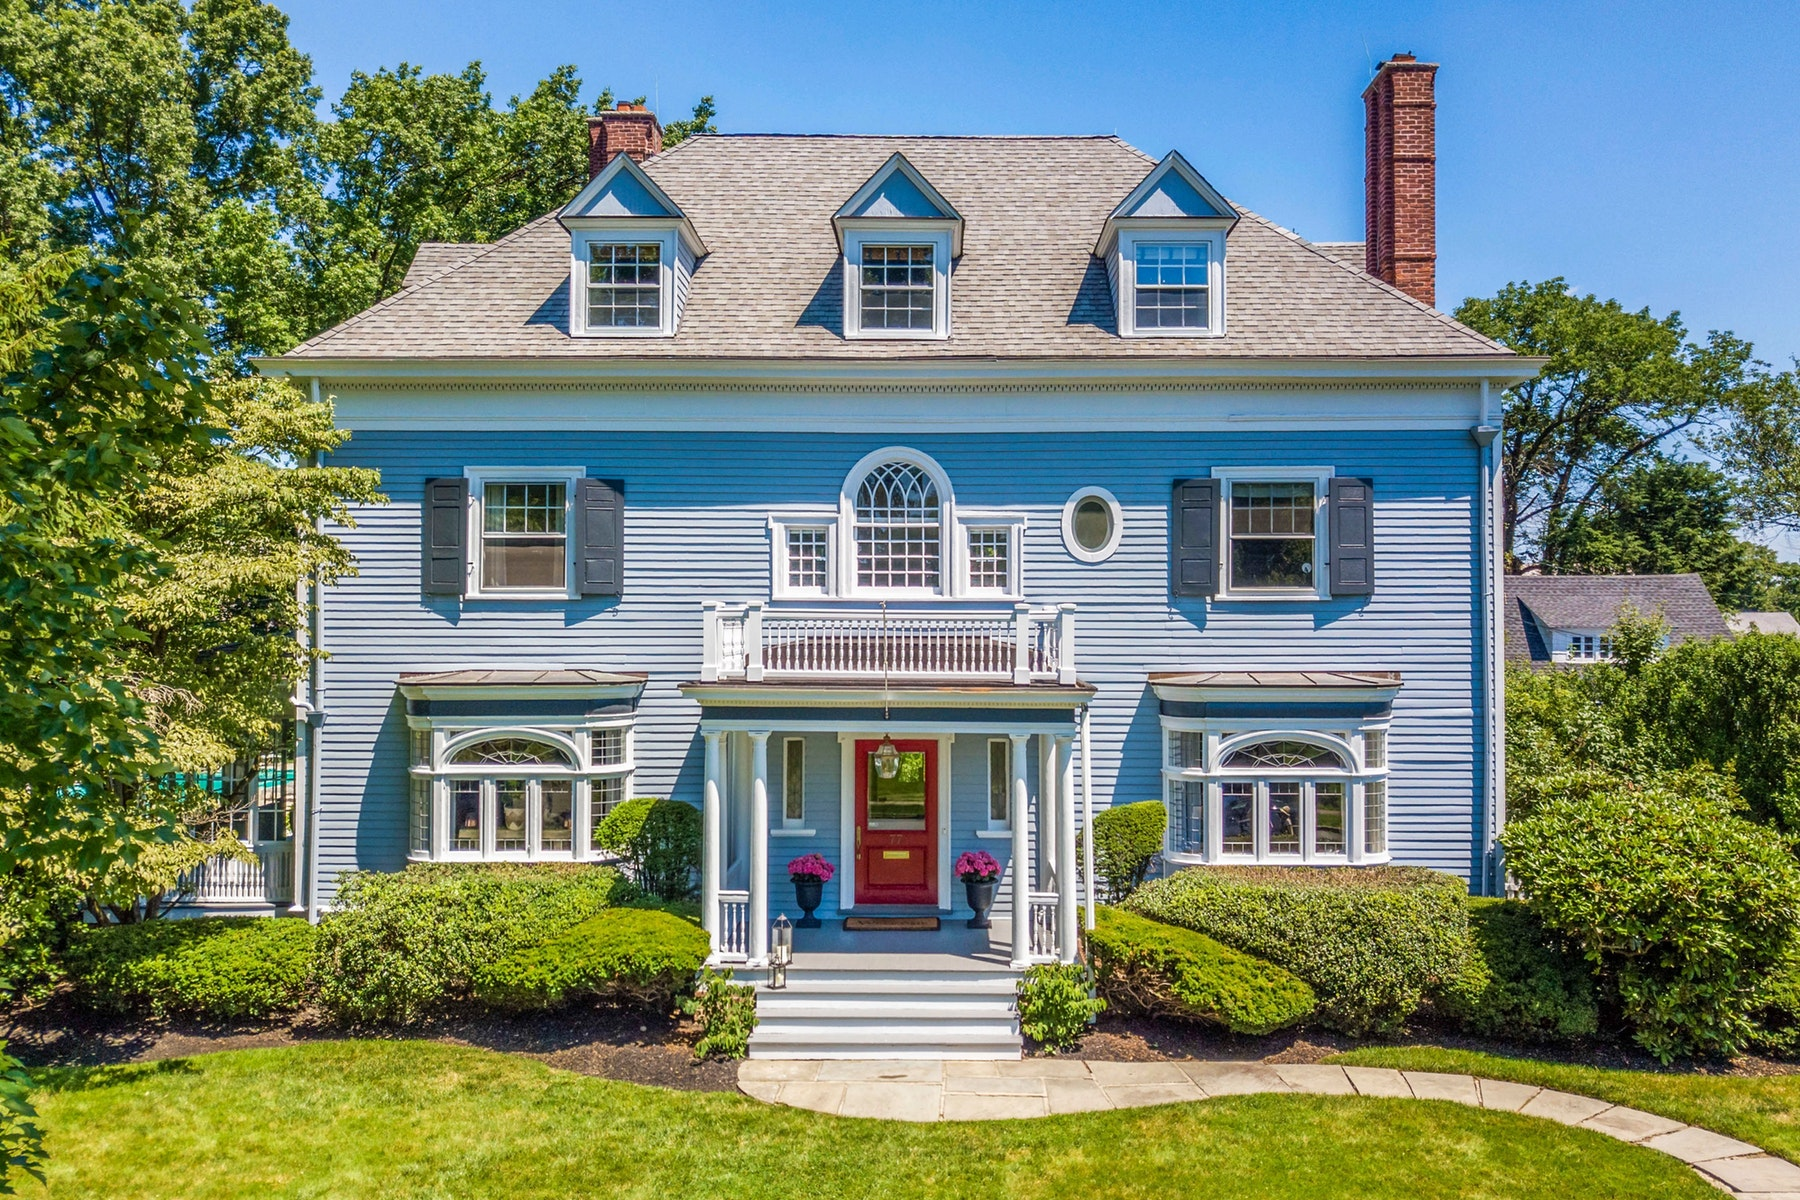 Single Family Homes for Sale at Elegant Georgian Colonial 77 Porter Place Montclair, New Jersey 07042 United States